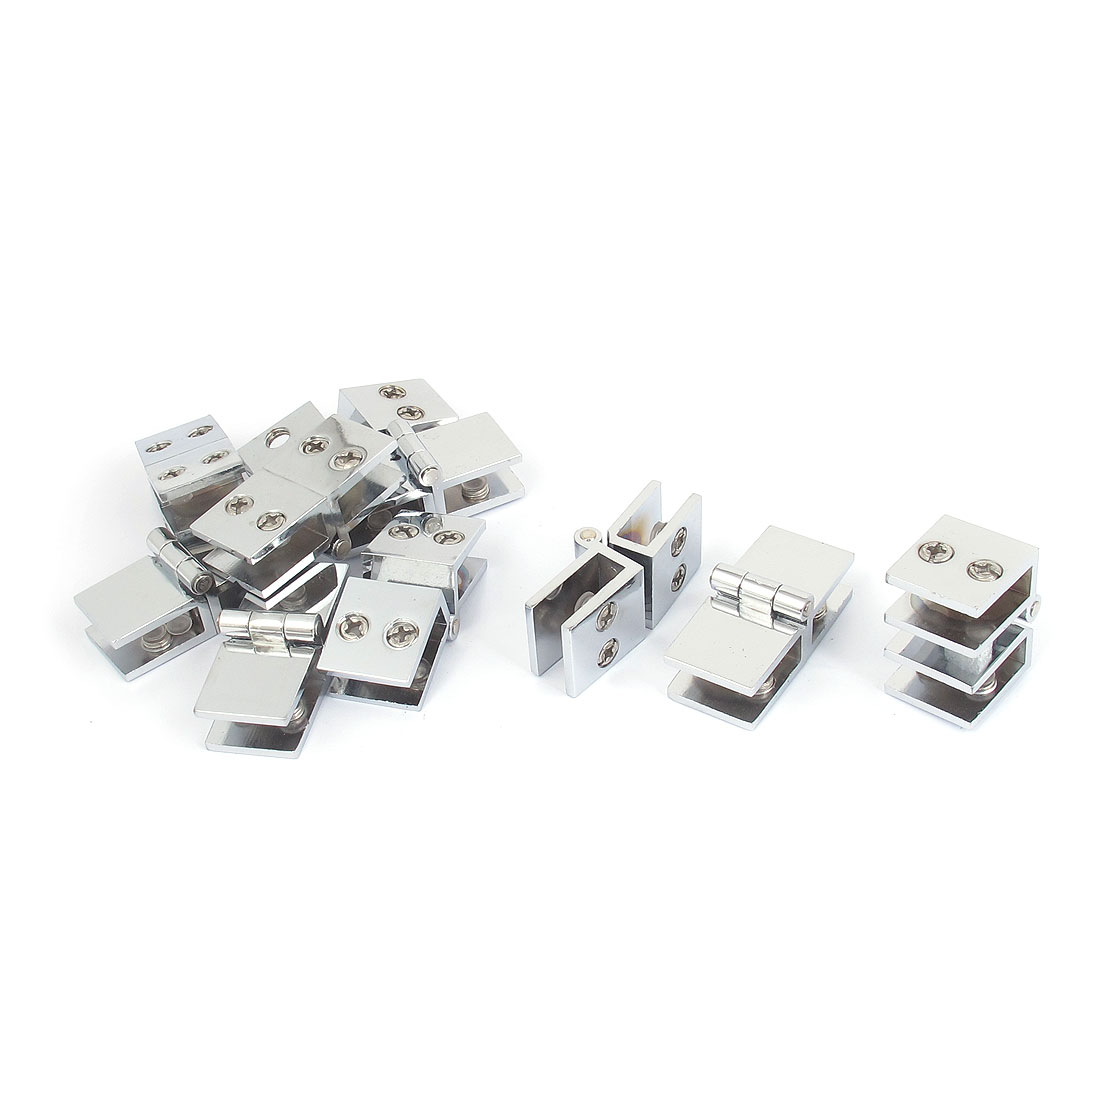 8mm Thickness 180 Degree Adjustable Metal Glass Shelf Clip Clamp Hinge 10pcs